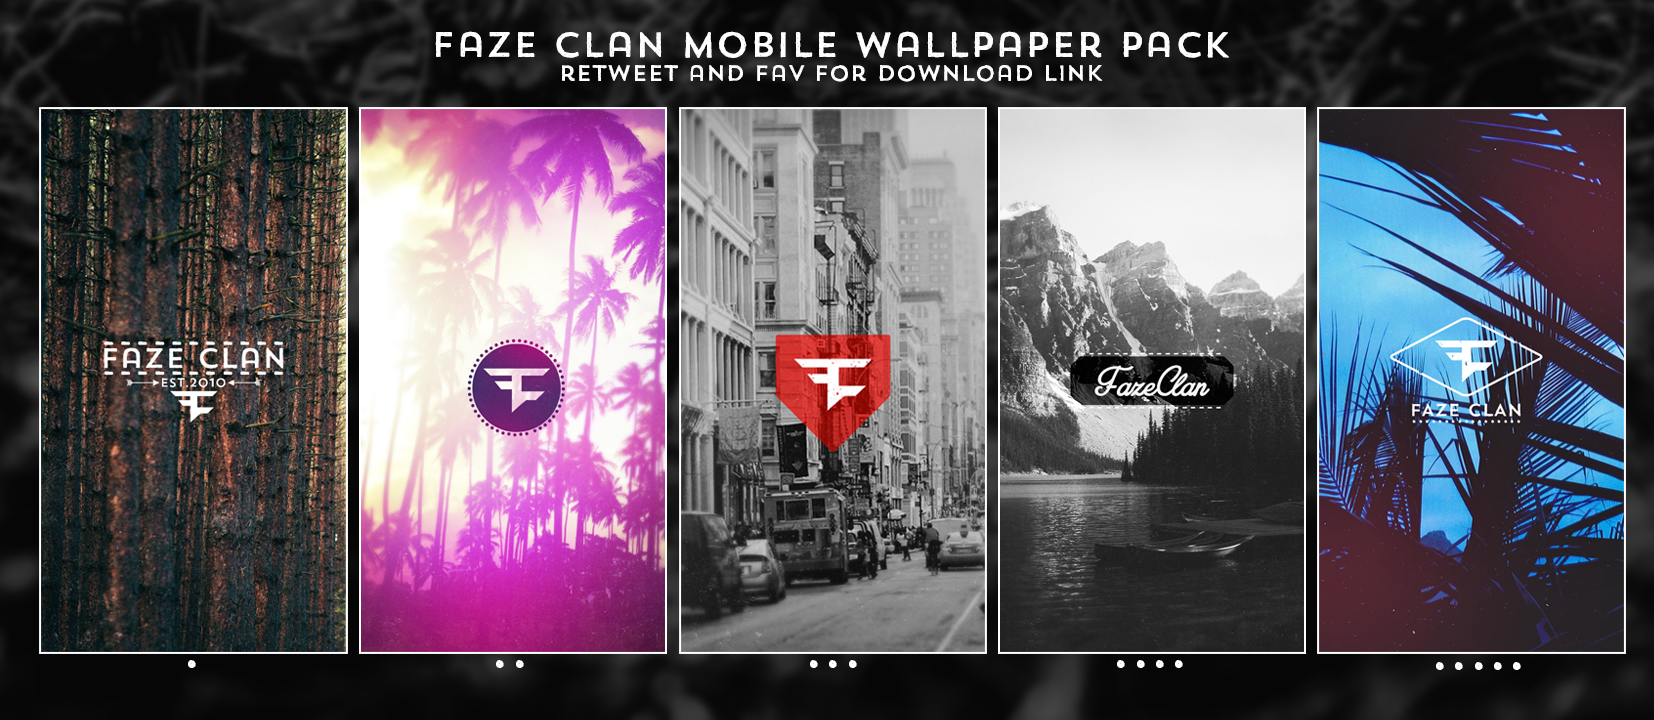 Faze Nikan On Twitter Faze Clan Mobile Wallpaper Pack Rt And